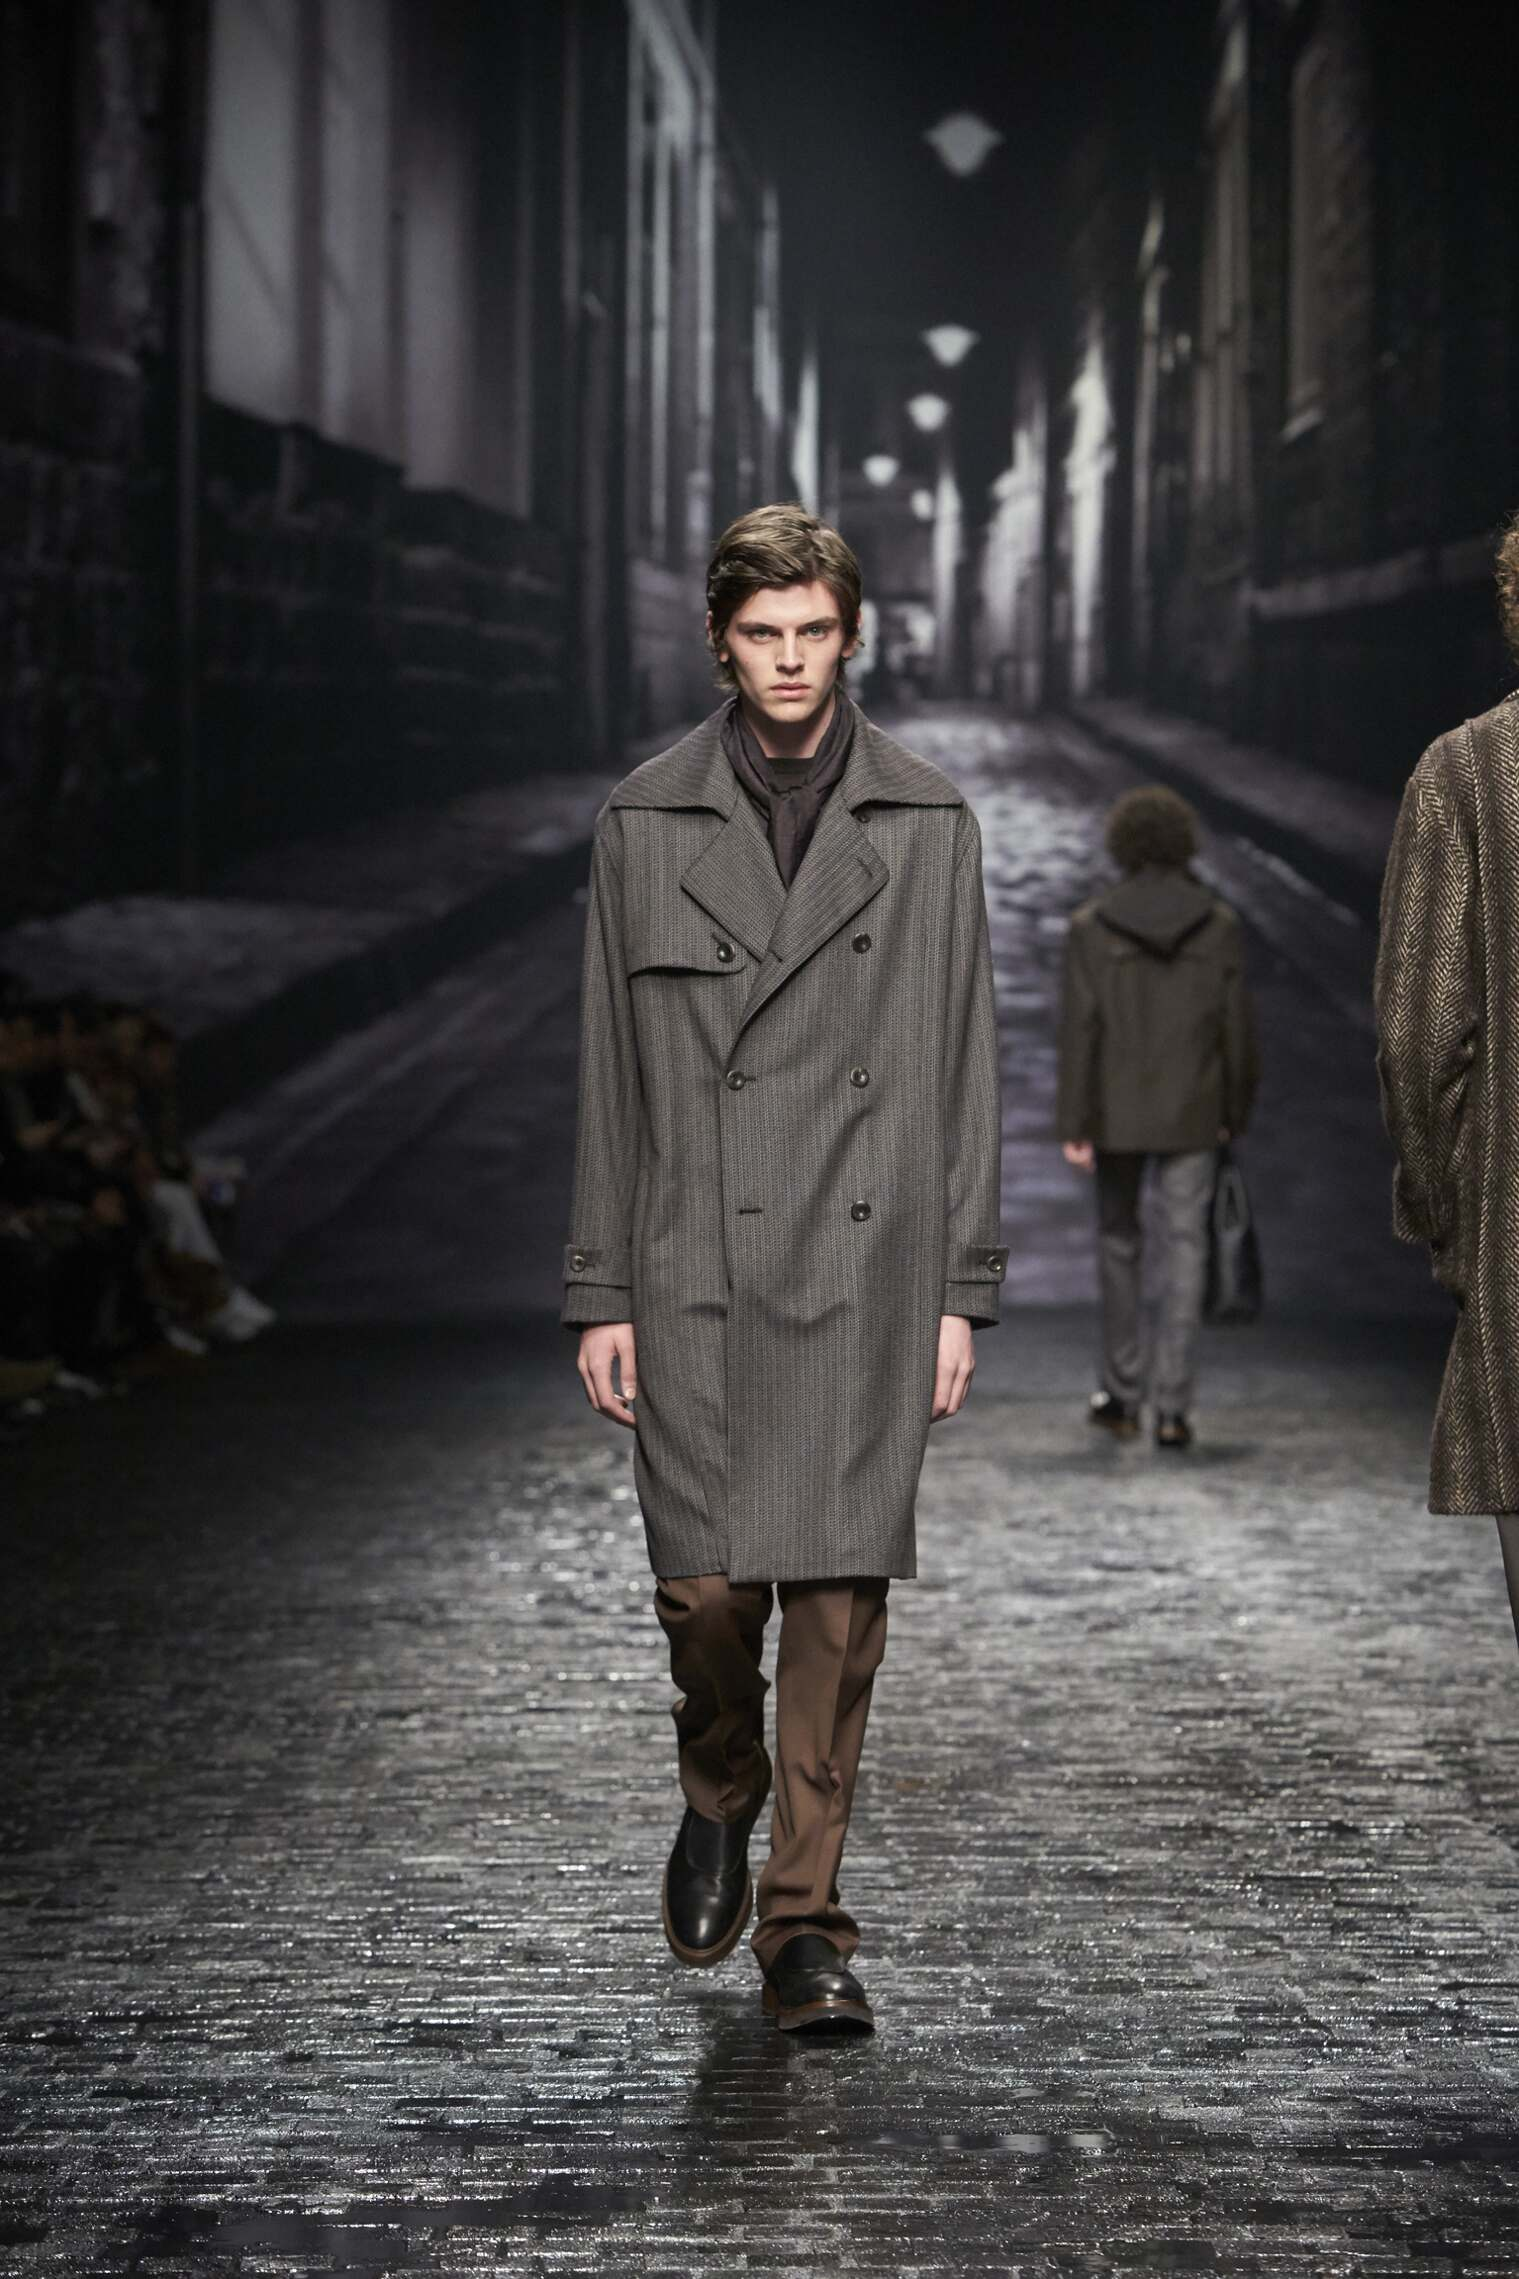 Catwalk Corneliani Man Fashion Show Winter 2016